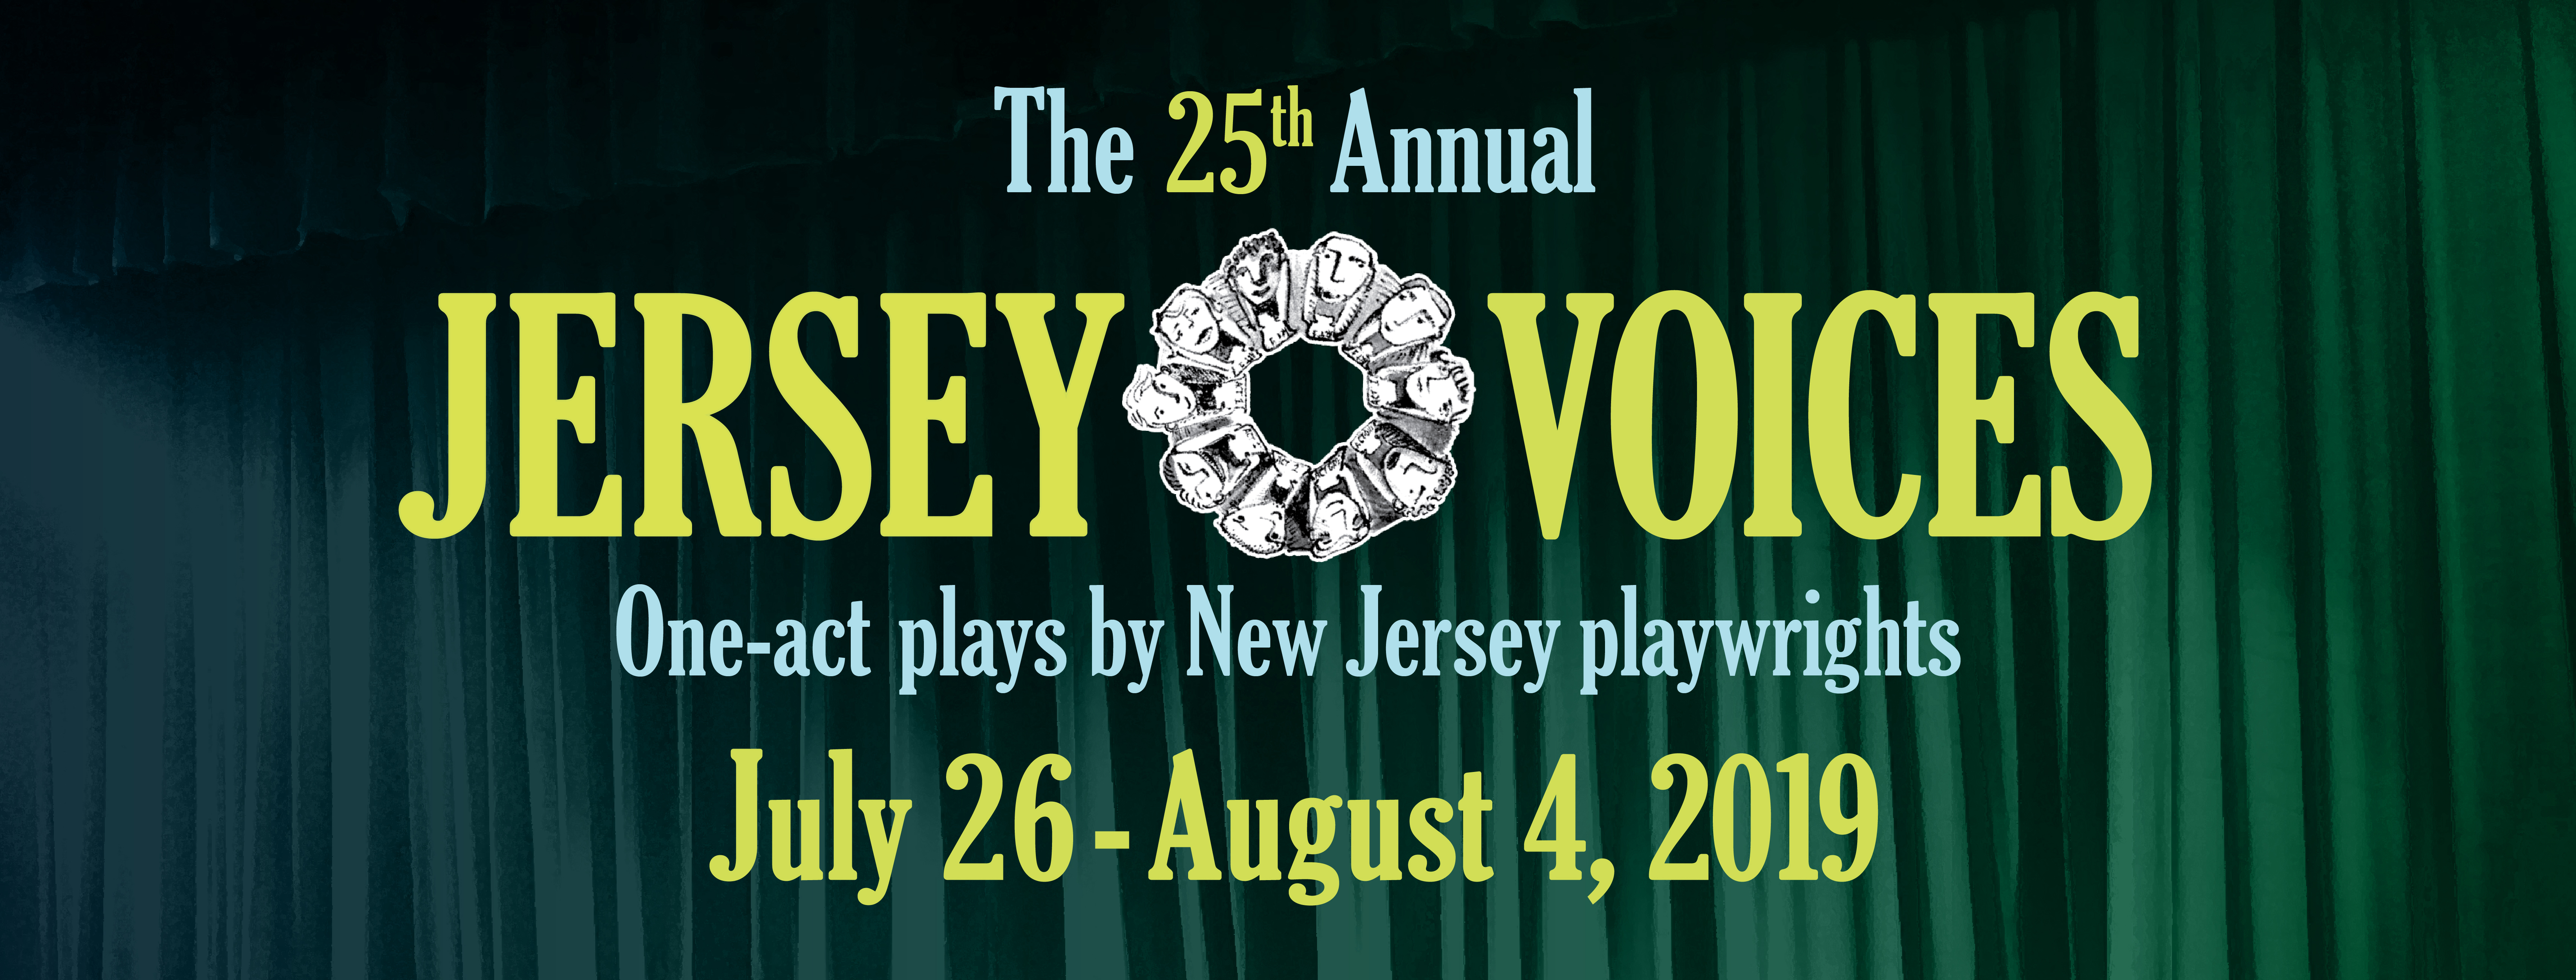 Jersey Voices 2019